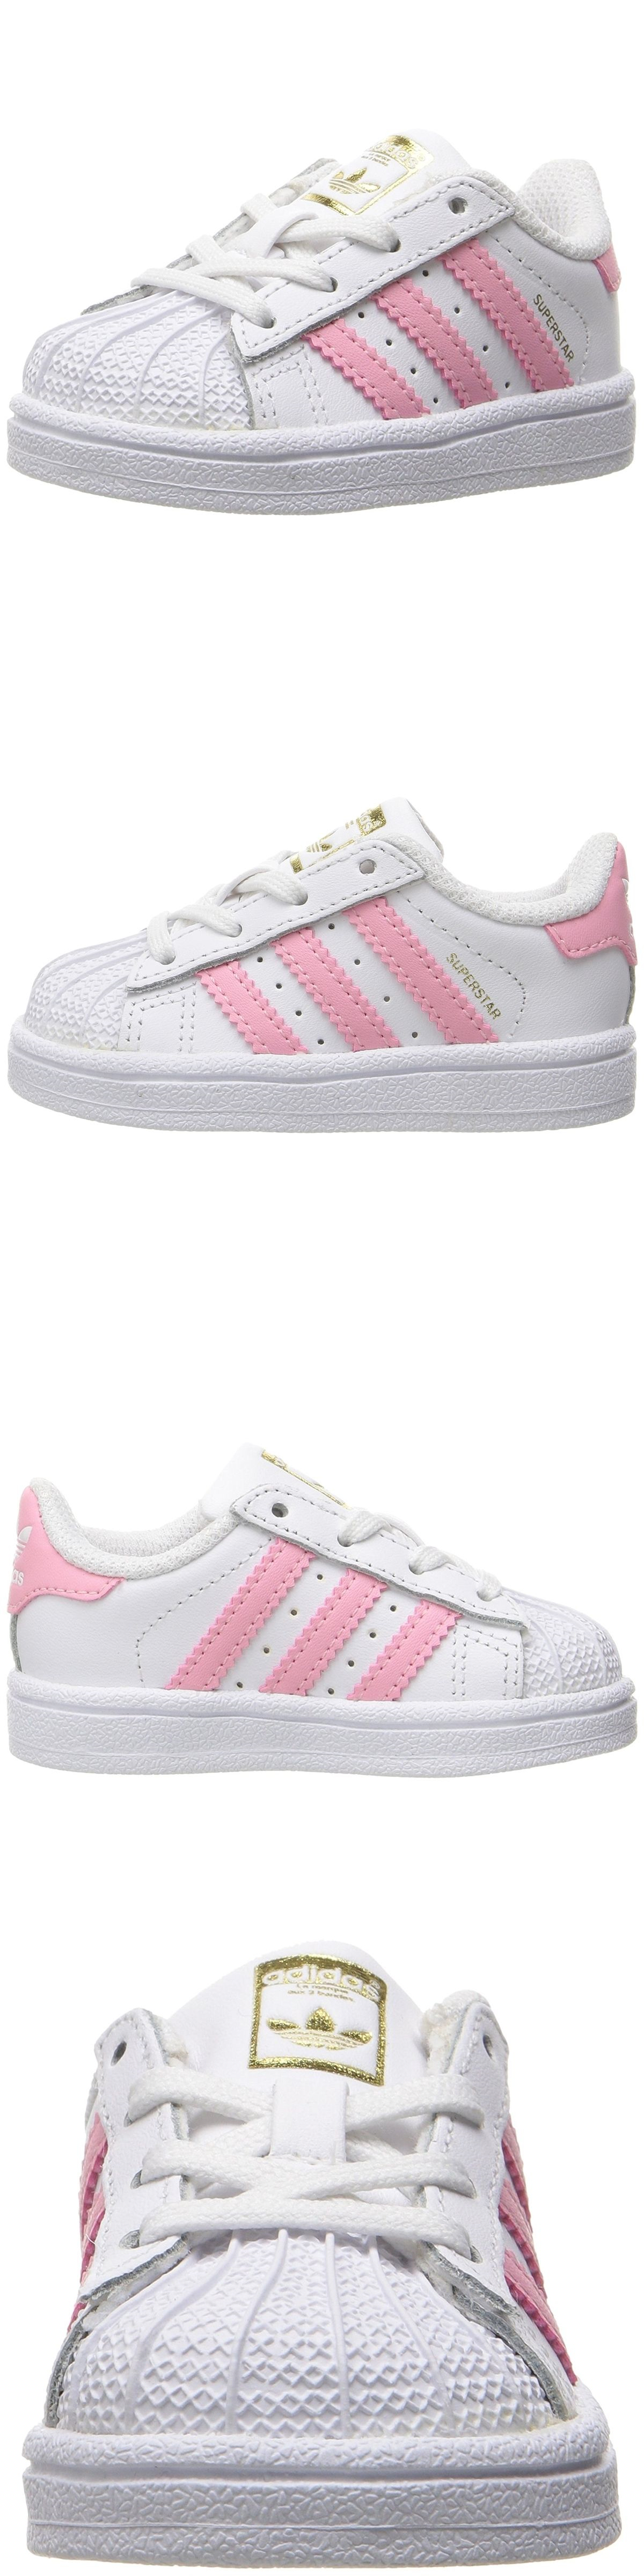 Infant Shoes: Adidas Originals Superstar Toddler Girl White Sneakers Adidas  Superstar By3720 BUY IT NOW